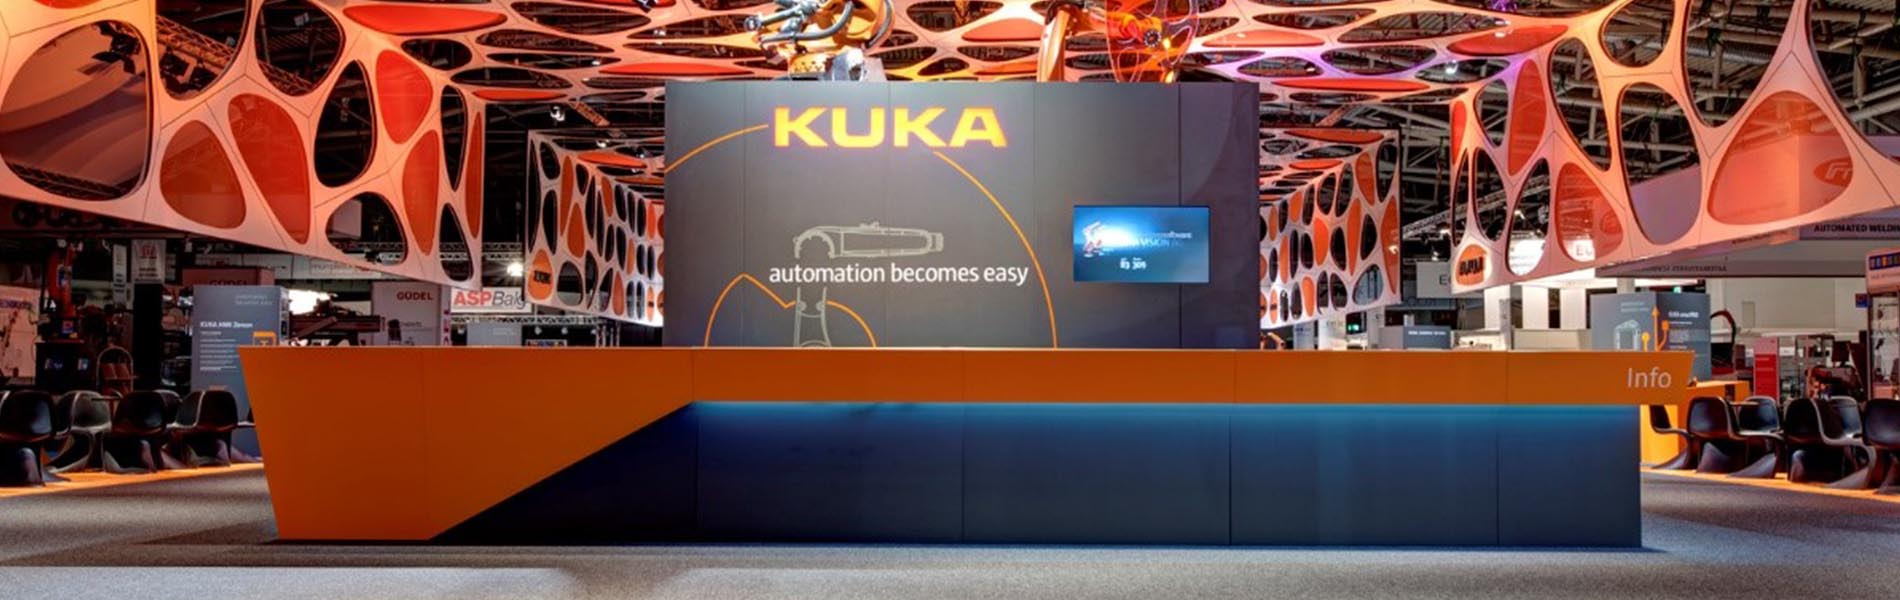 kuka messestand header